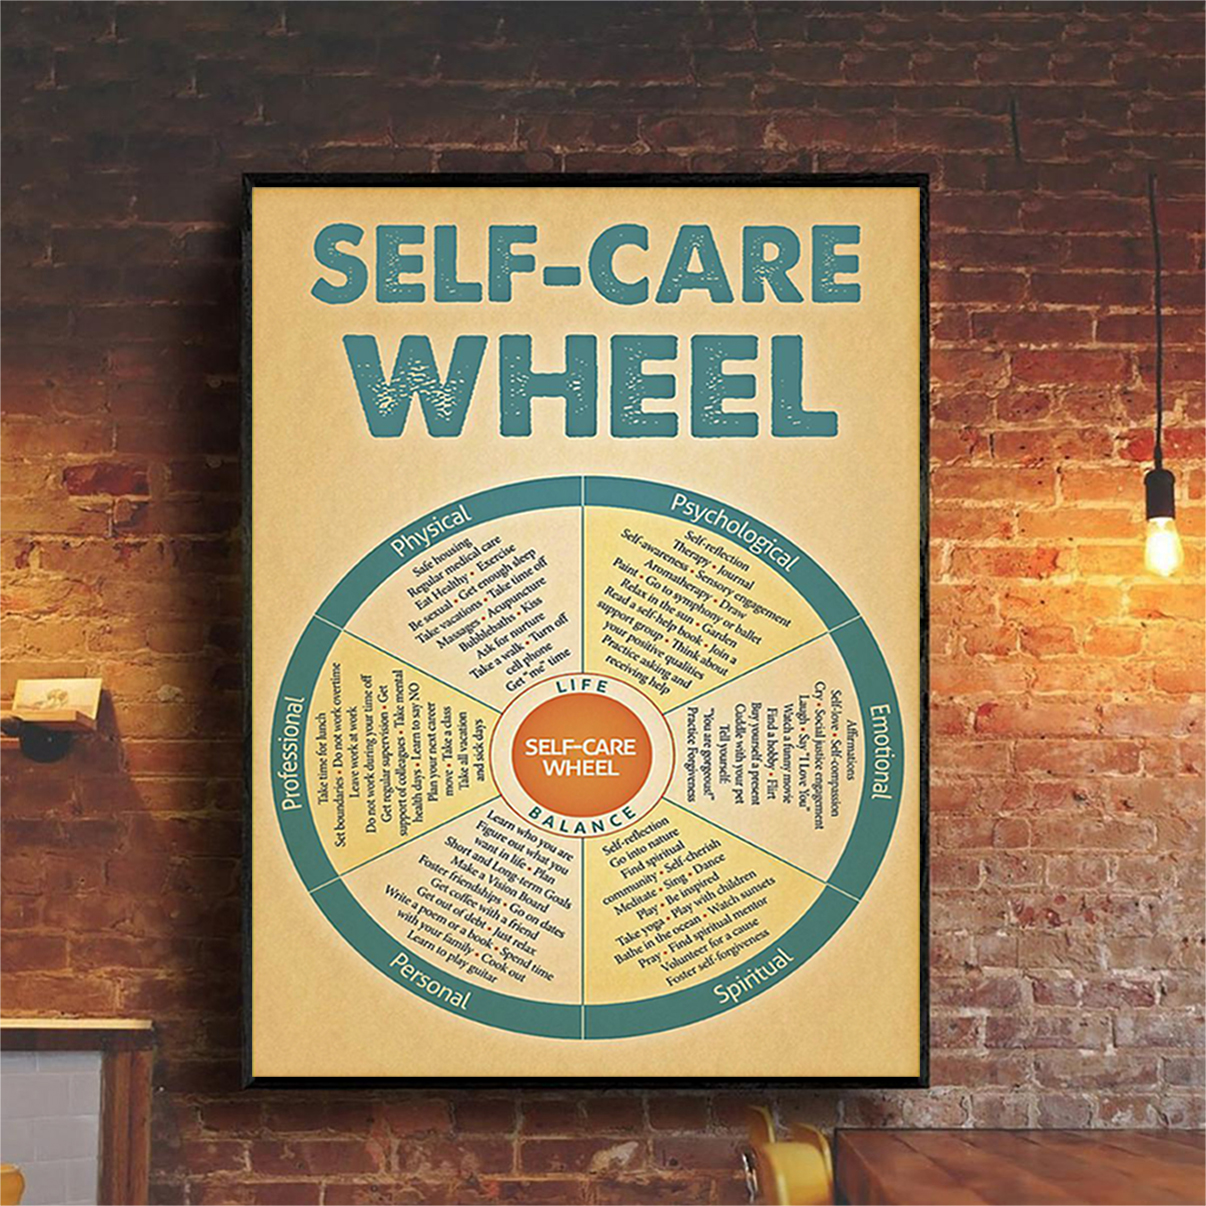 Poster social worker self-care wheel A3